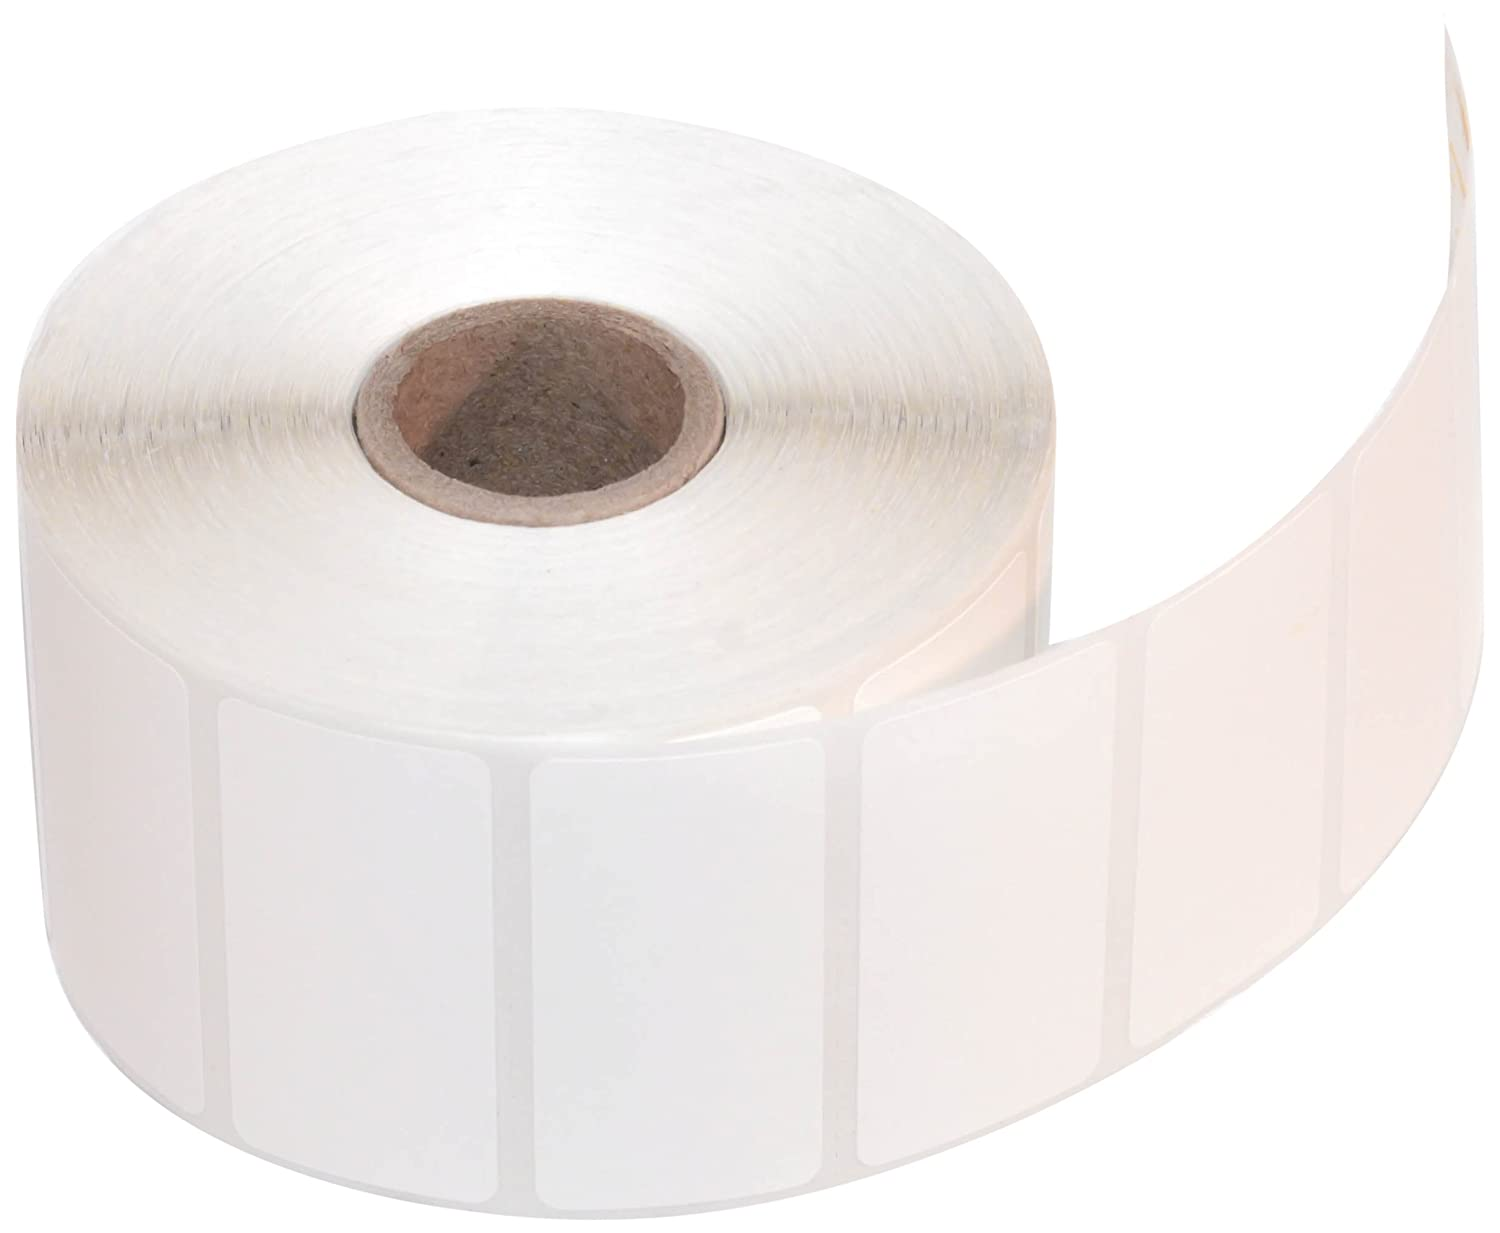 CompuLabel Direct Thermal Labels, 2-Inch x 1 Inch, White, Roll, Permanent Adhesive, Perforations Between Labels, 1300 per Roll, 12 Rolls per Carton (530550) Continental Datalabel Inc.